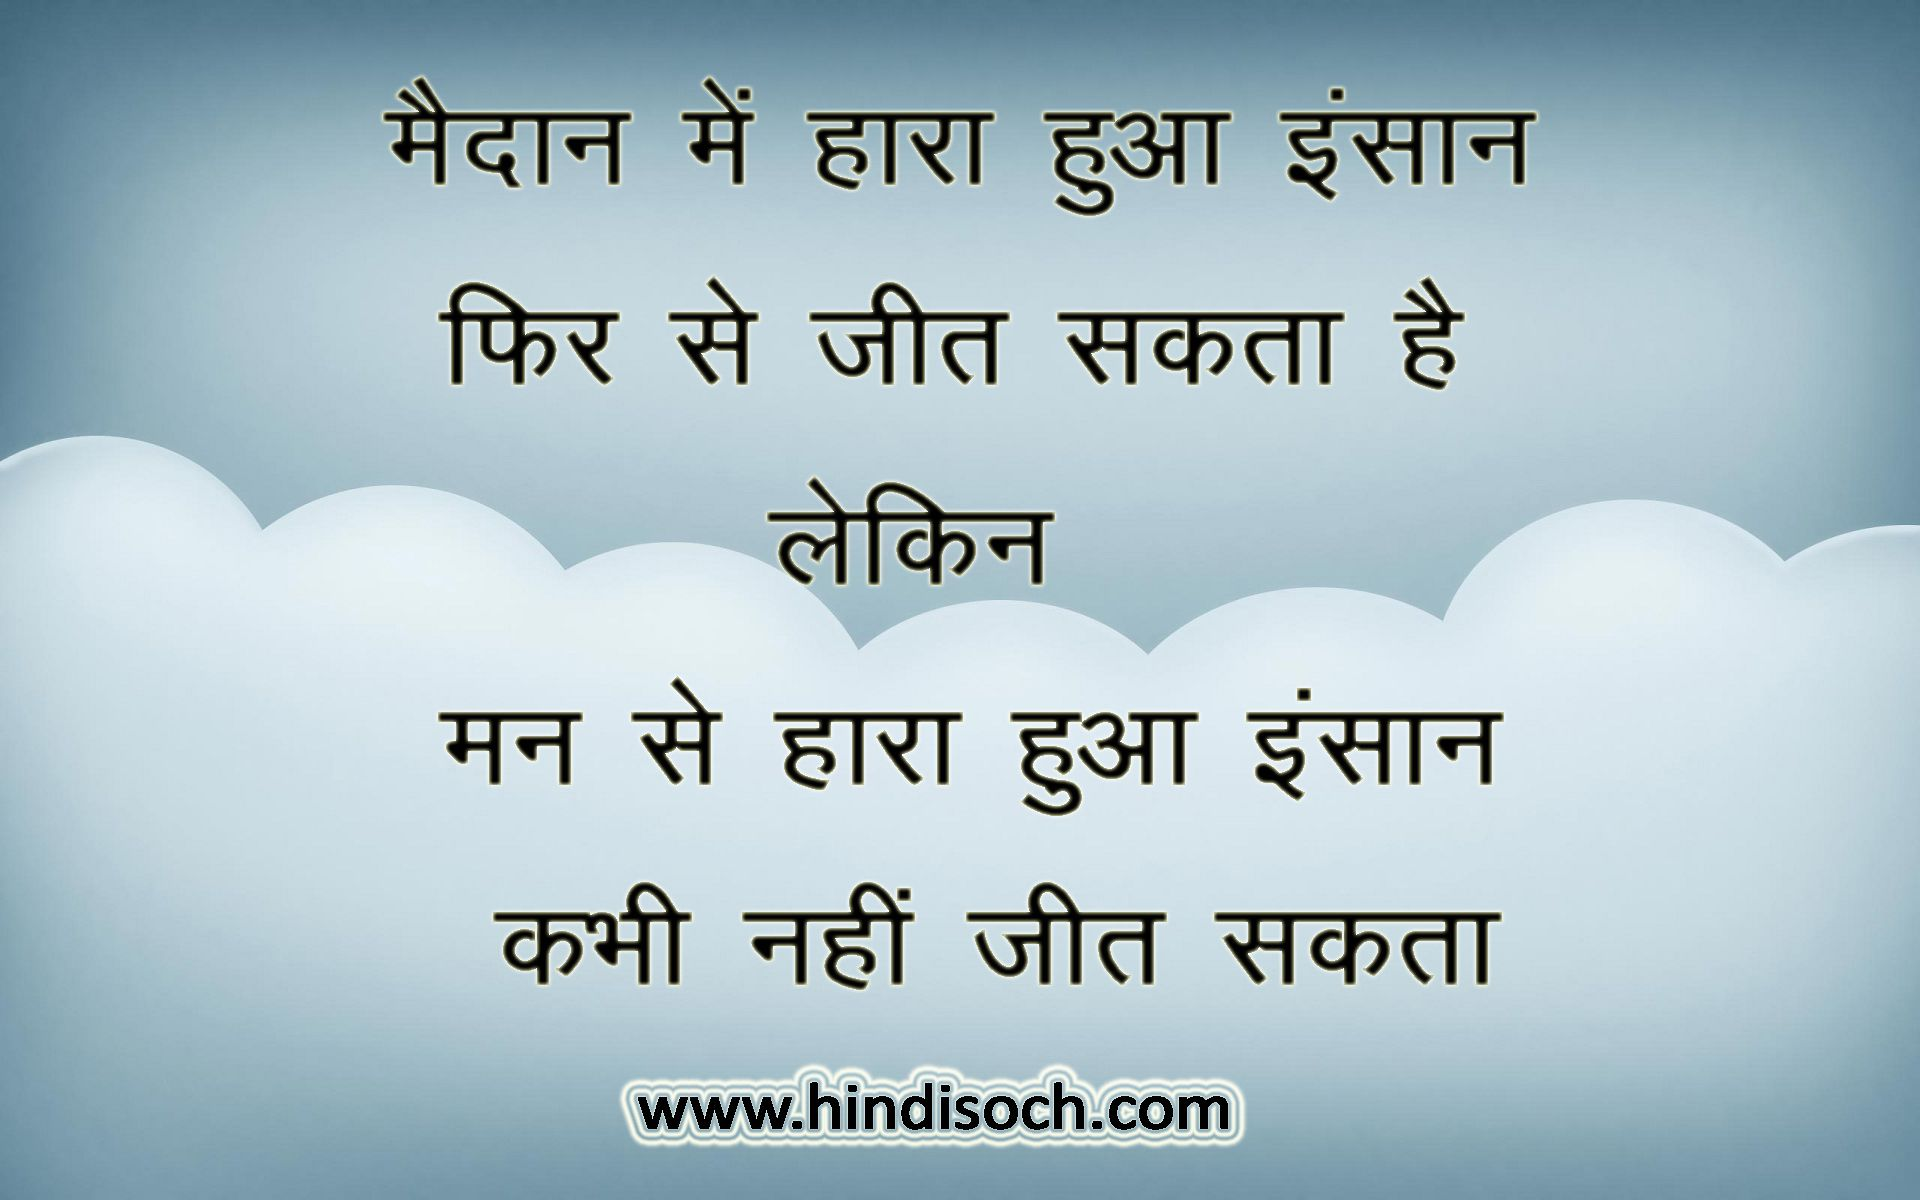 Some Good Quotes On Life 50 Life Inspirational Motivational Quotes In Hindi With Images